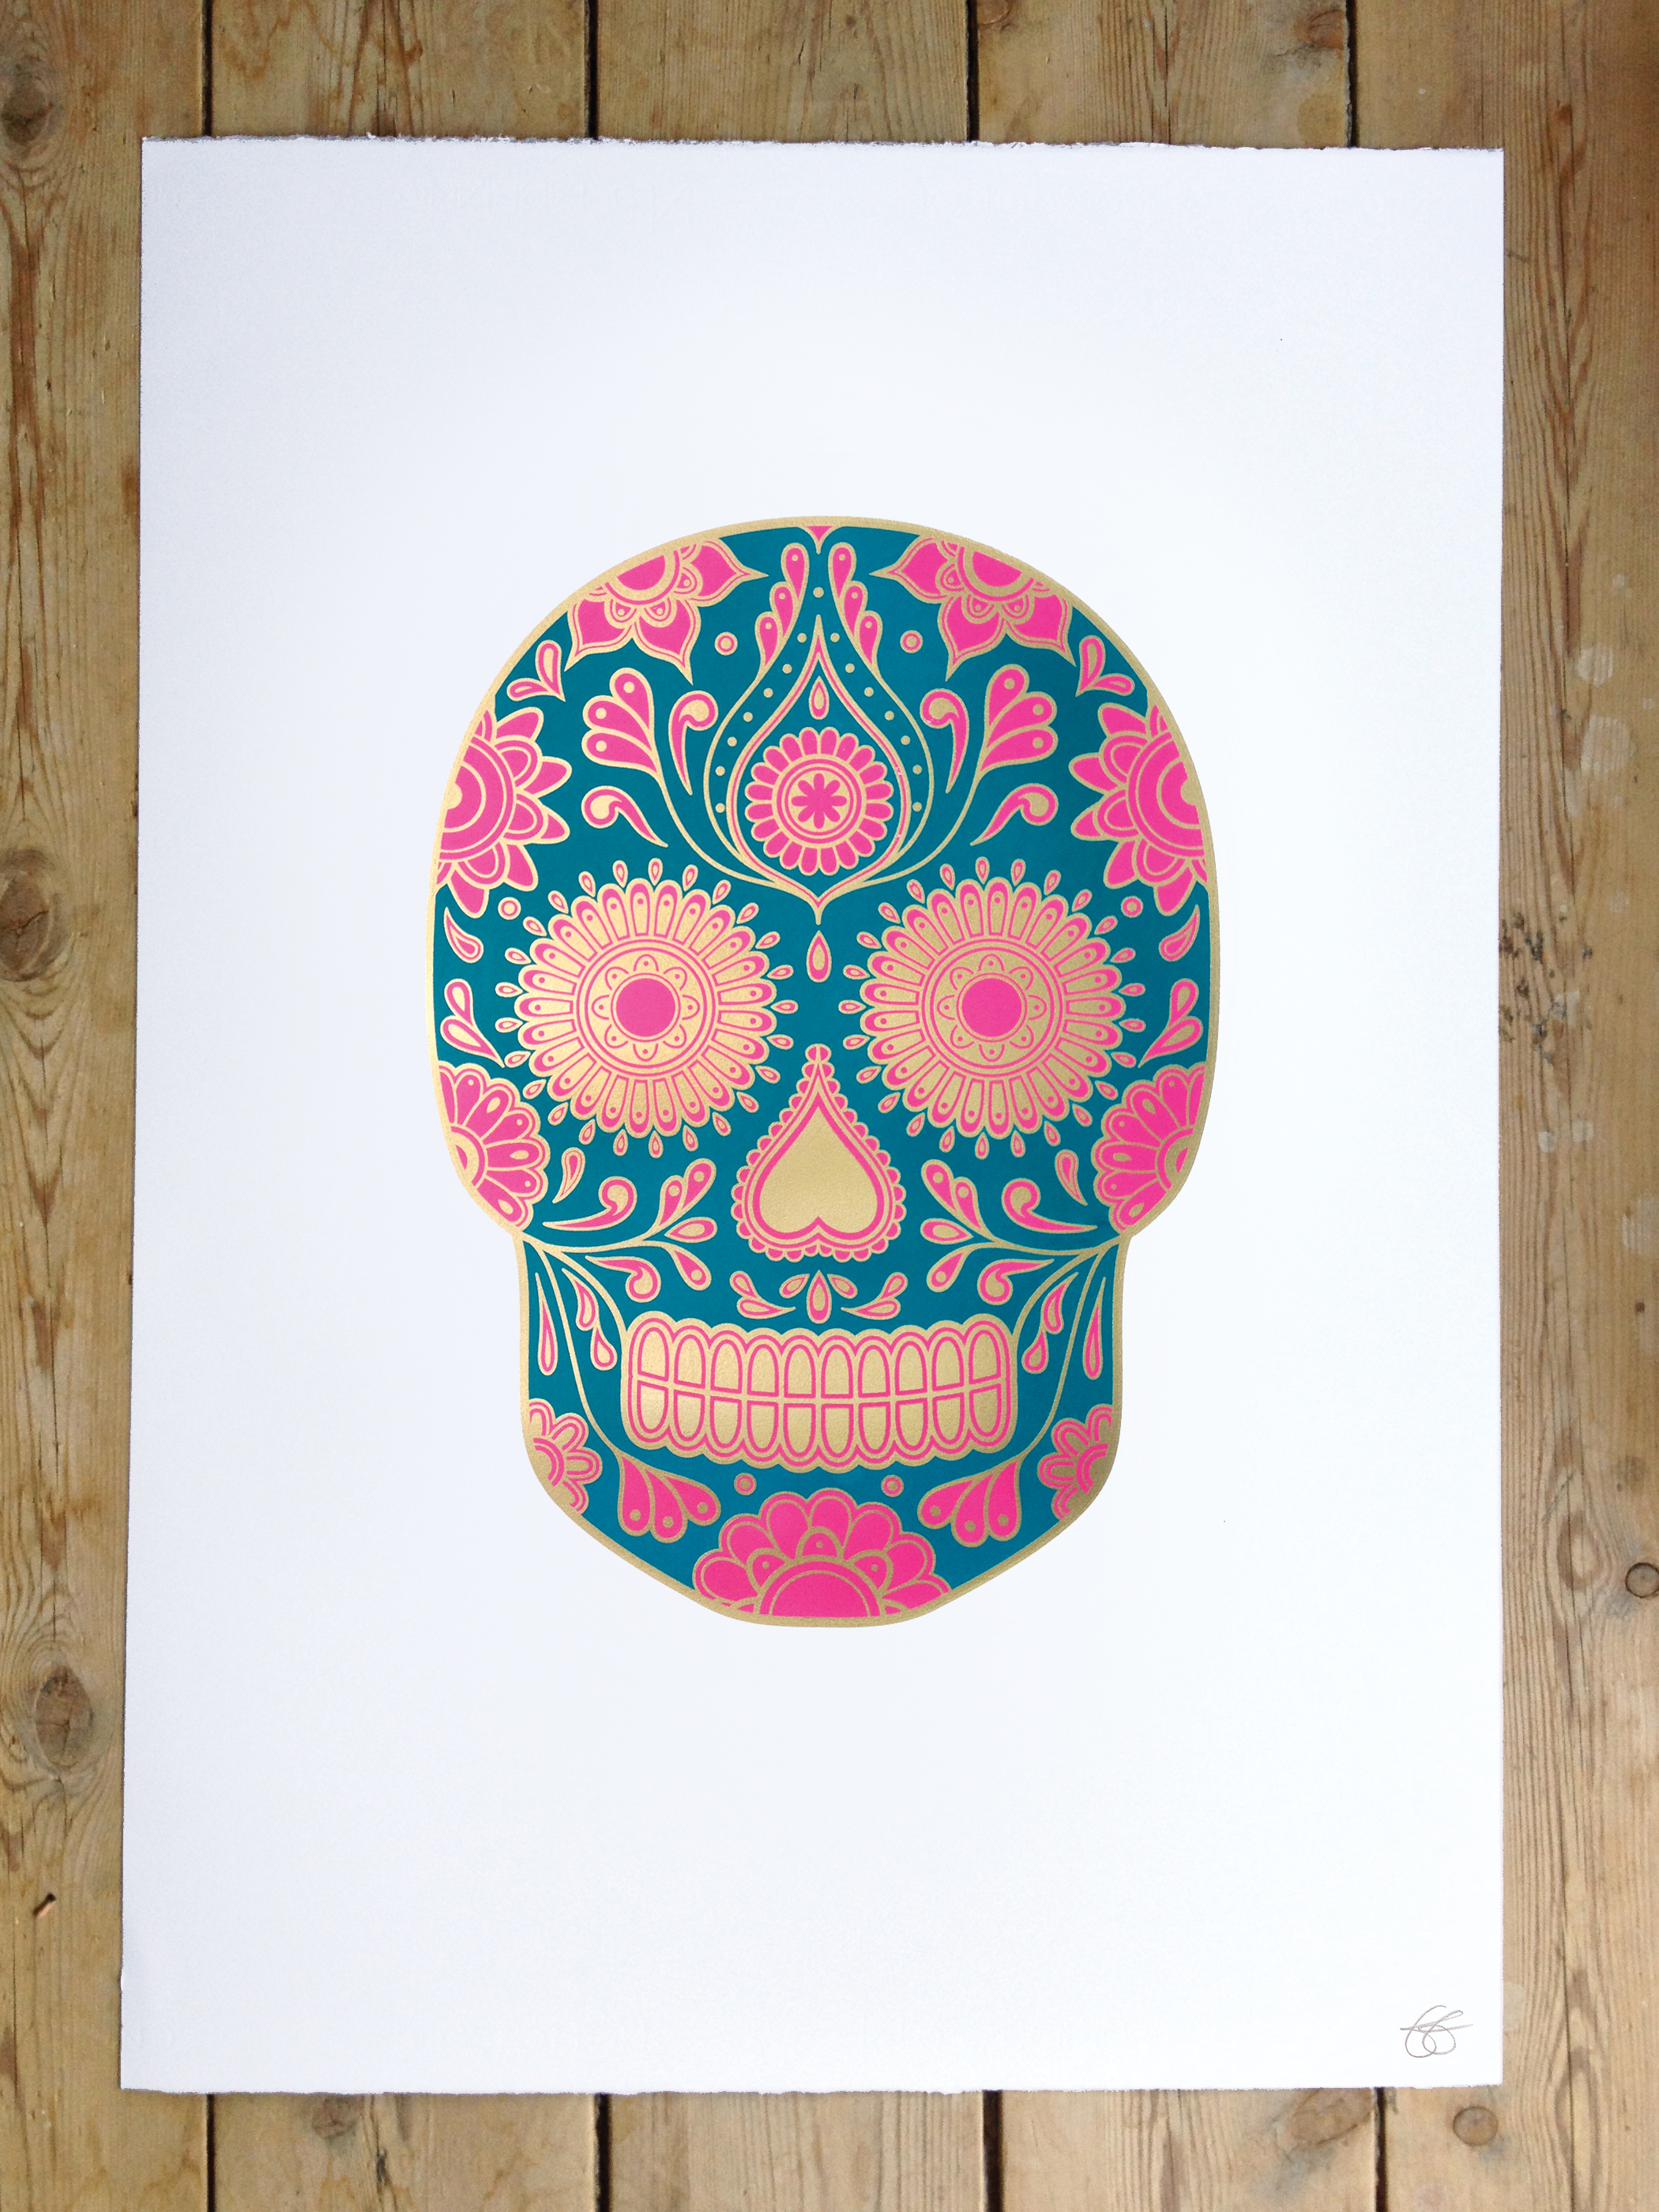 Sugar Skulls Wallpaper Sugar skull wallpaper 2100x2800